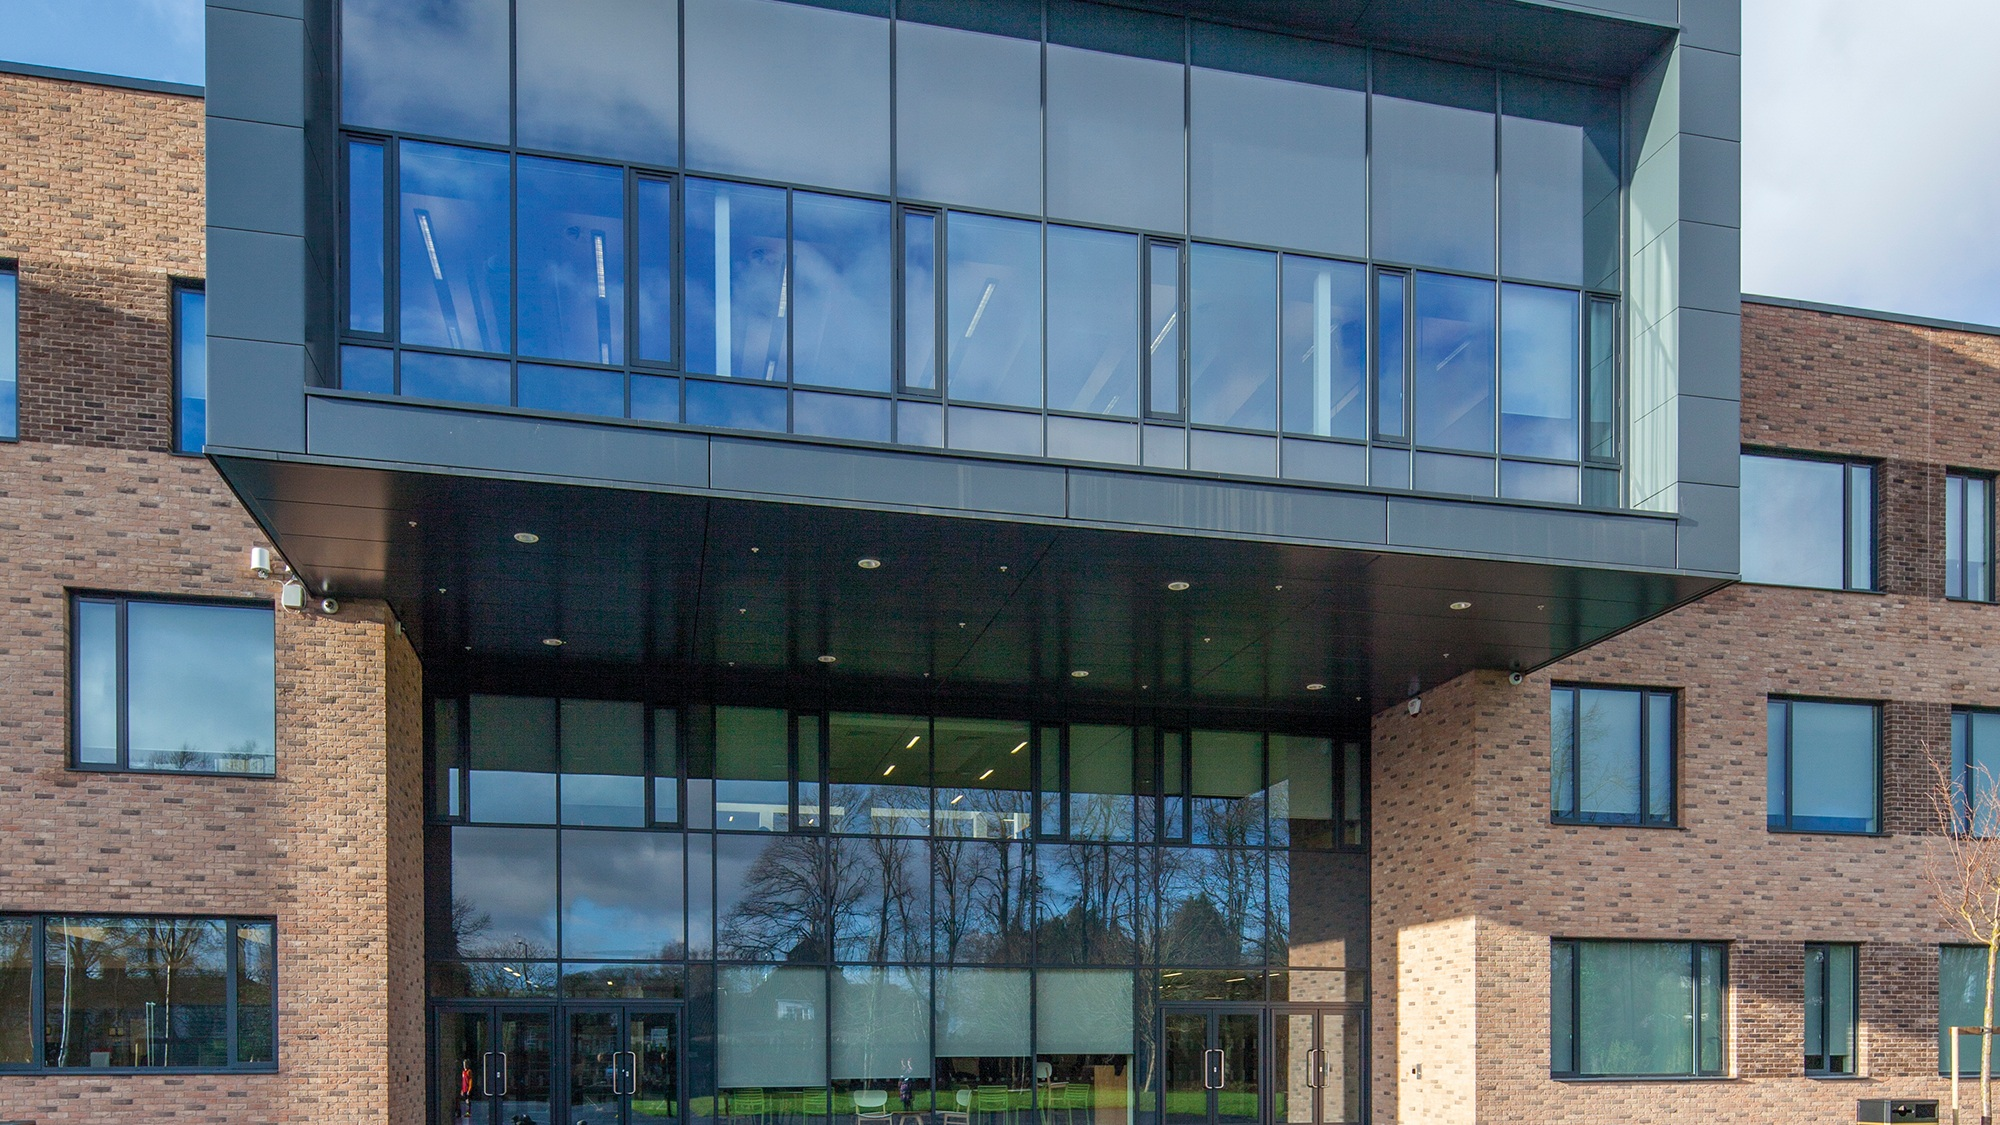 EDUCATION BUILDINGS - Whether we are conducting new build or refurbishment projects, Bauxite Glazing Specialists has vast experience in working in both the public and private education sectors across the UK.